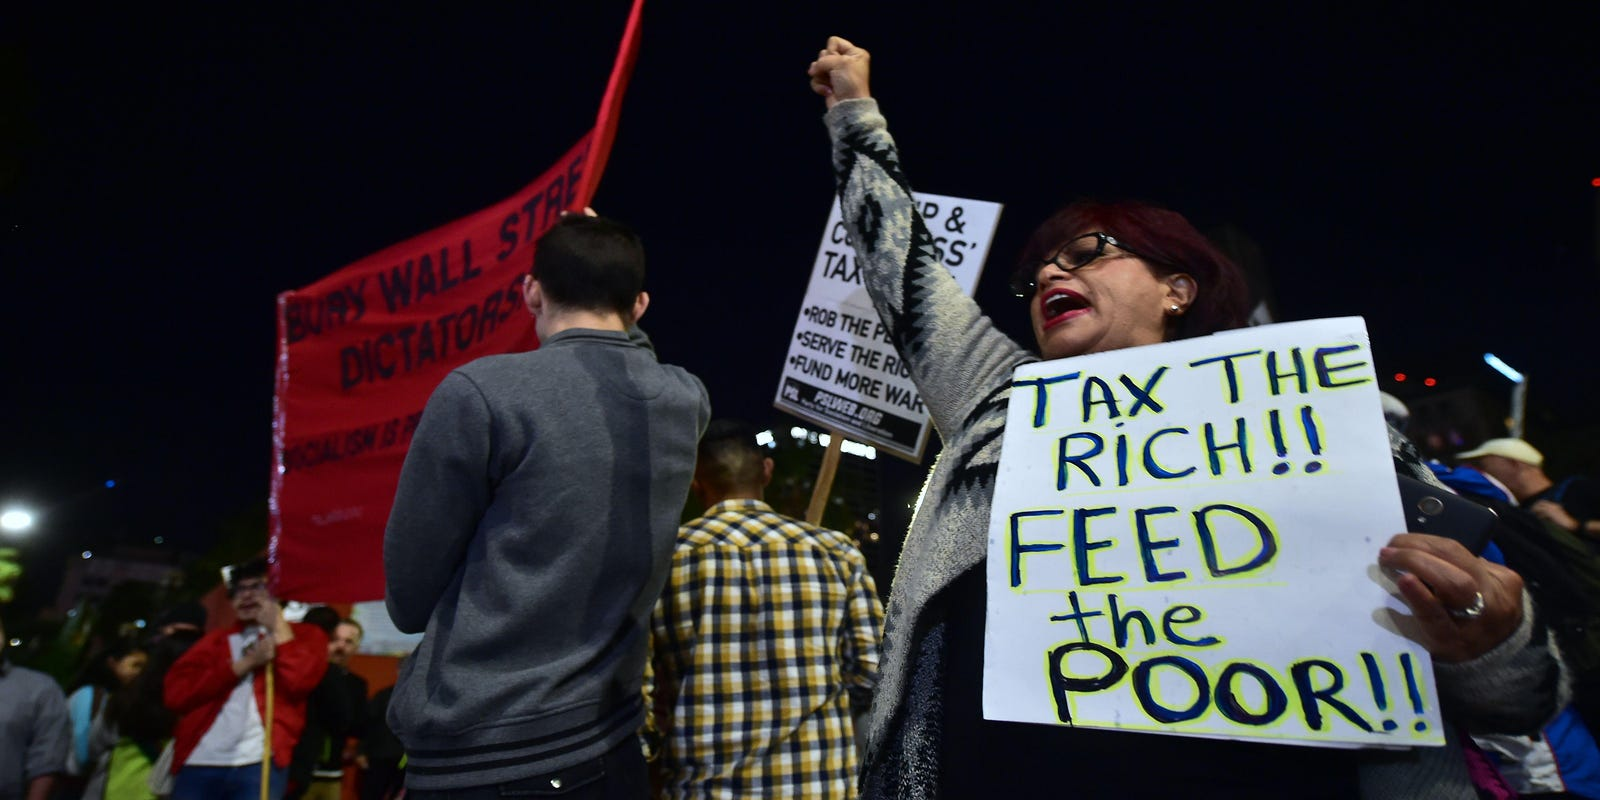 Image result for tax the rich feed the poor